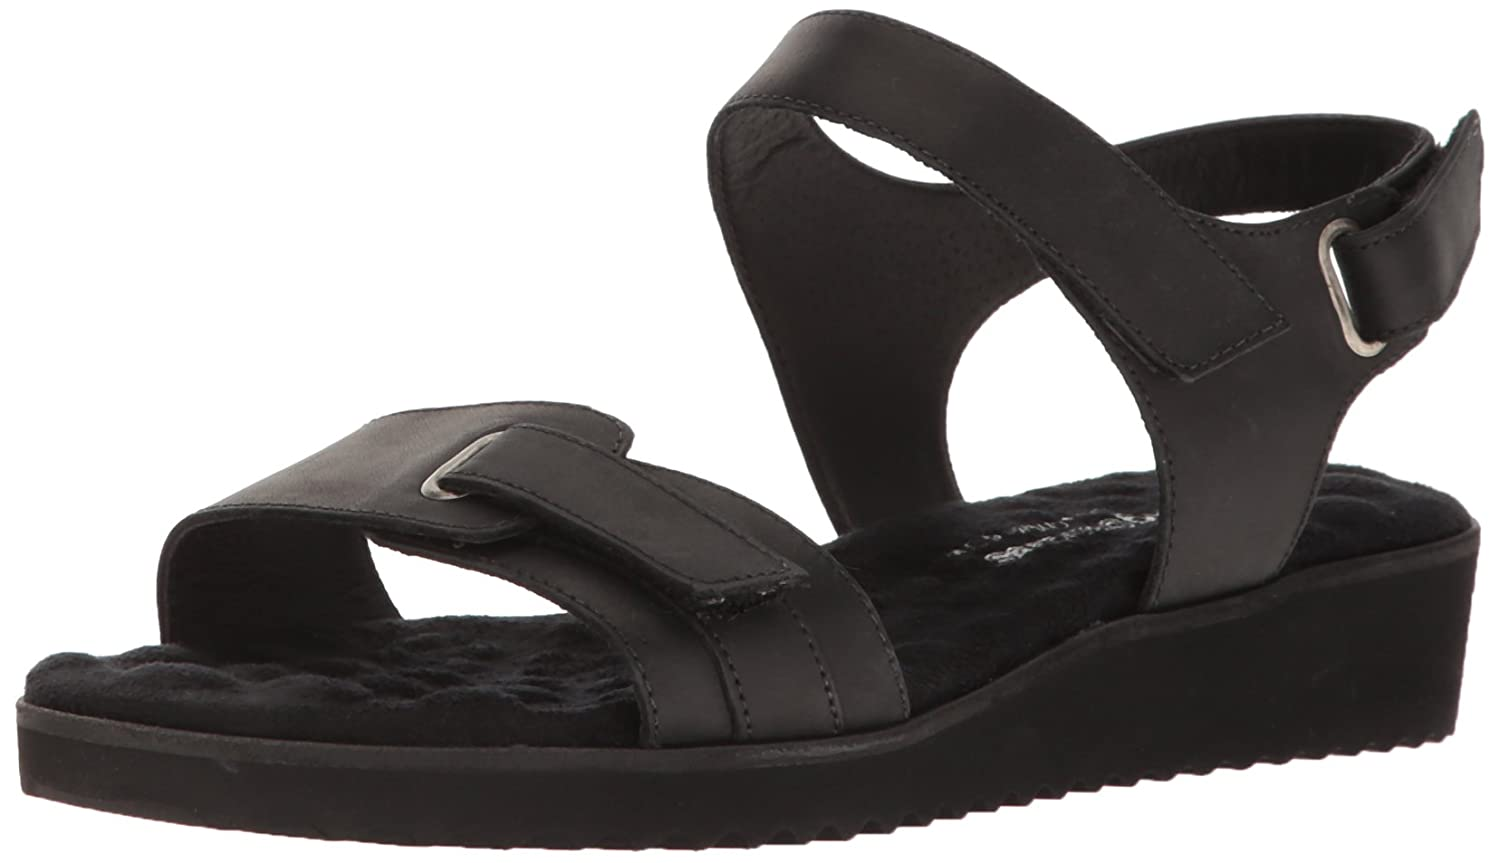 Walking Cradles Women's Halle Flat Sandal B01KB58KMI 9 B(M) US|Black